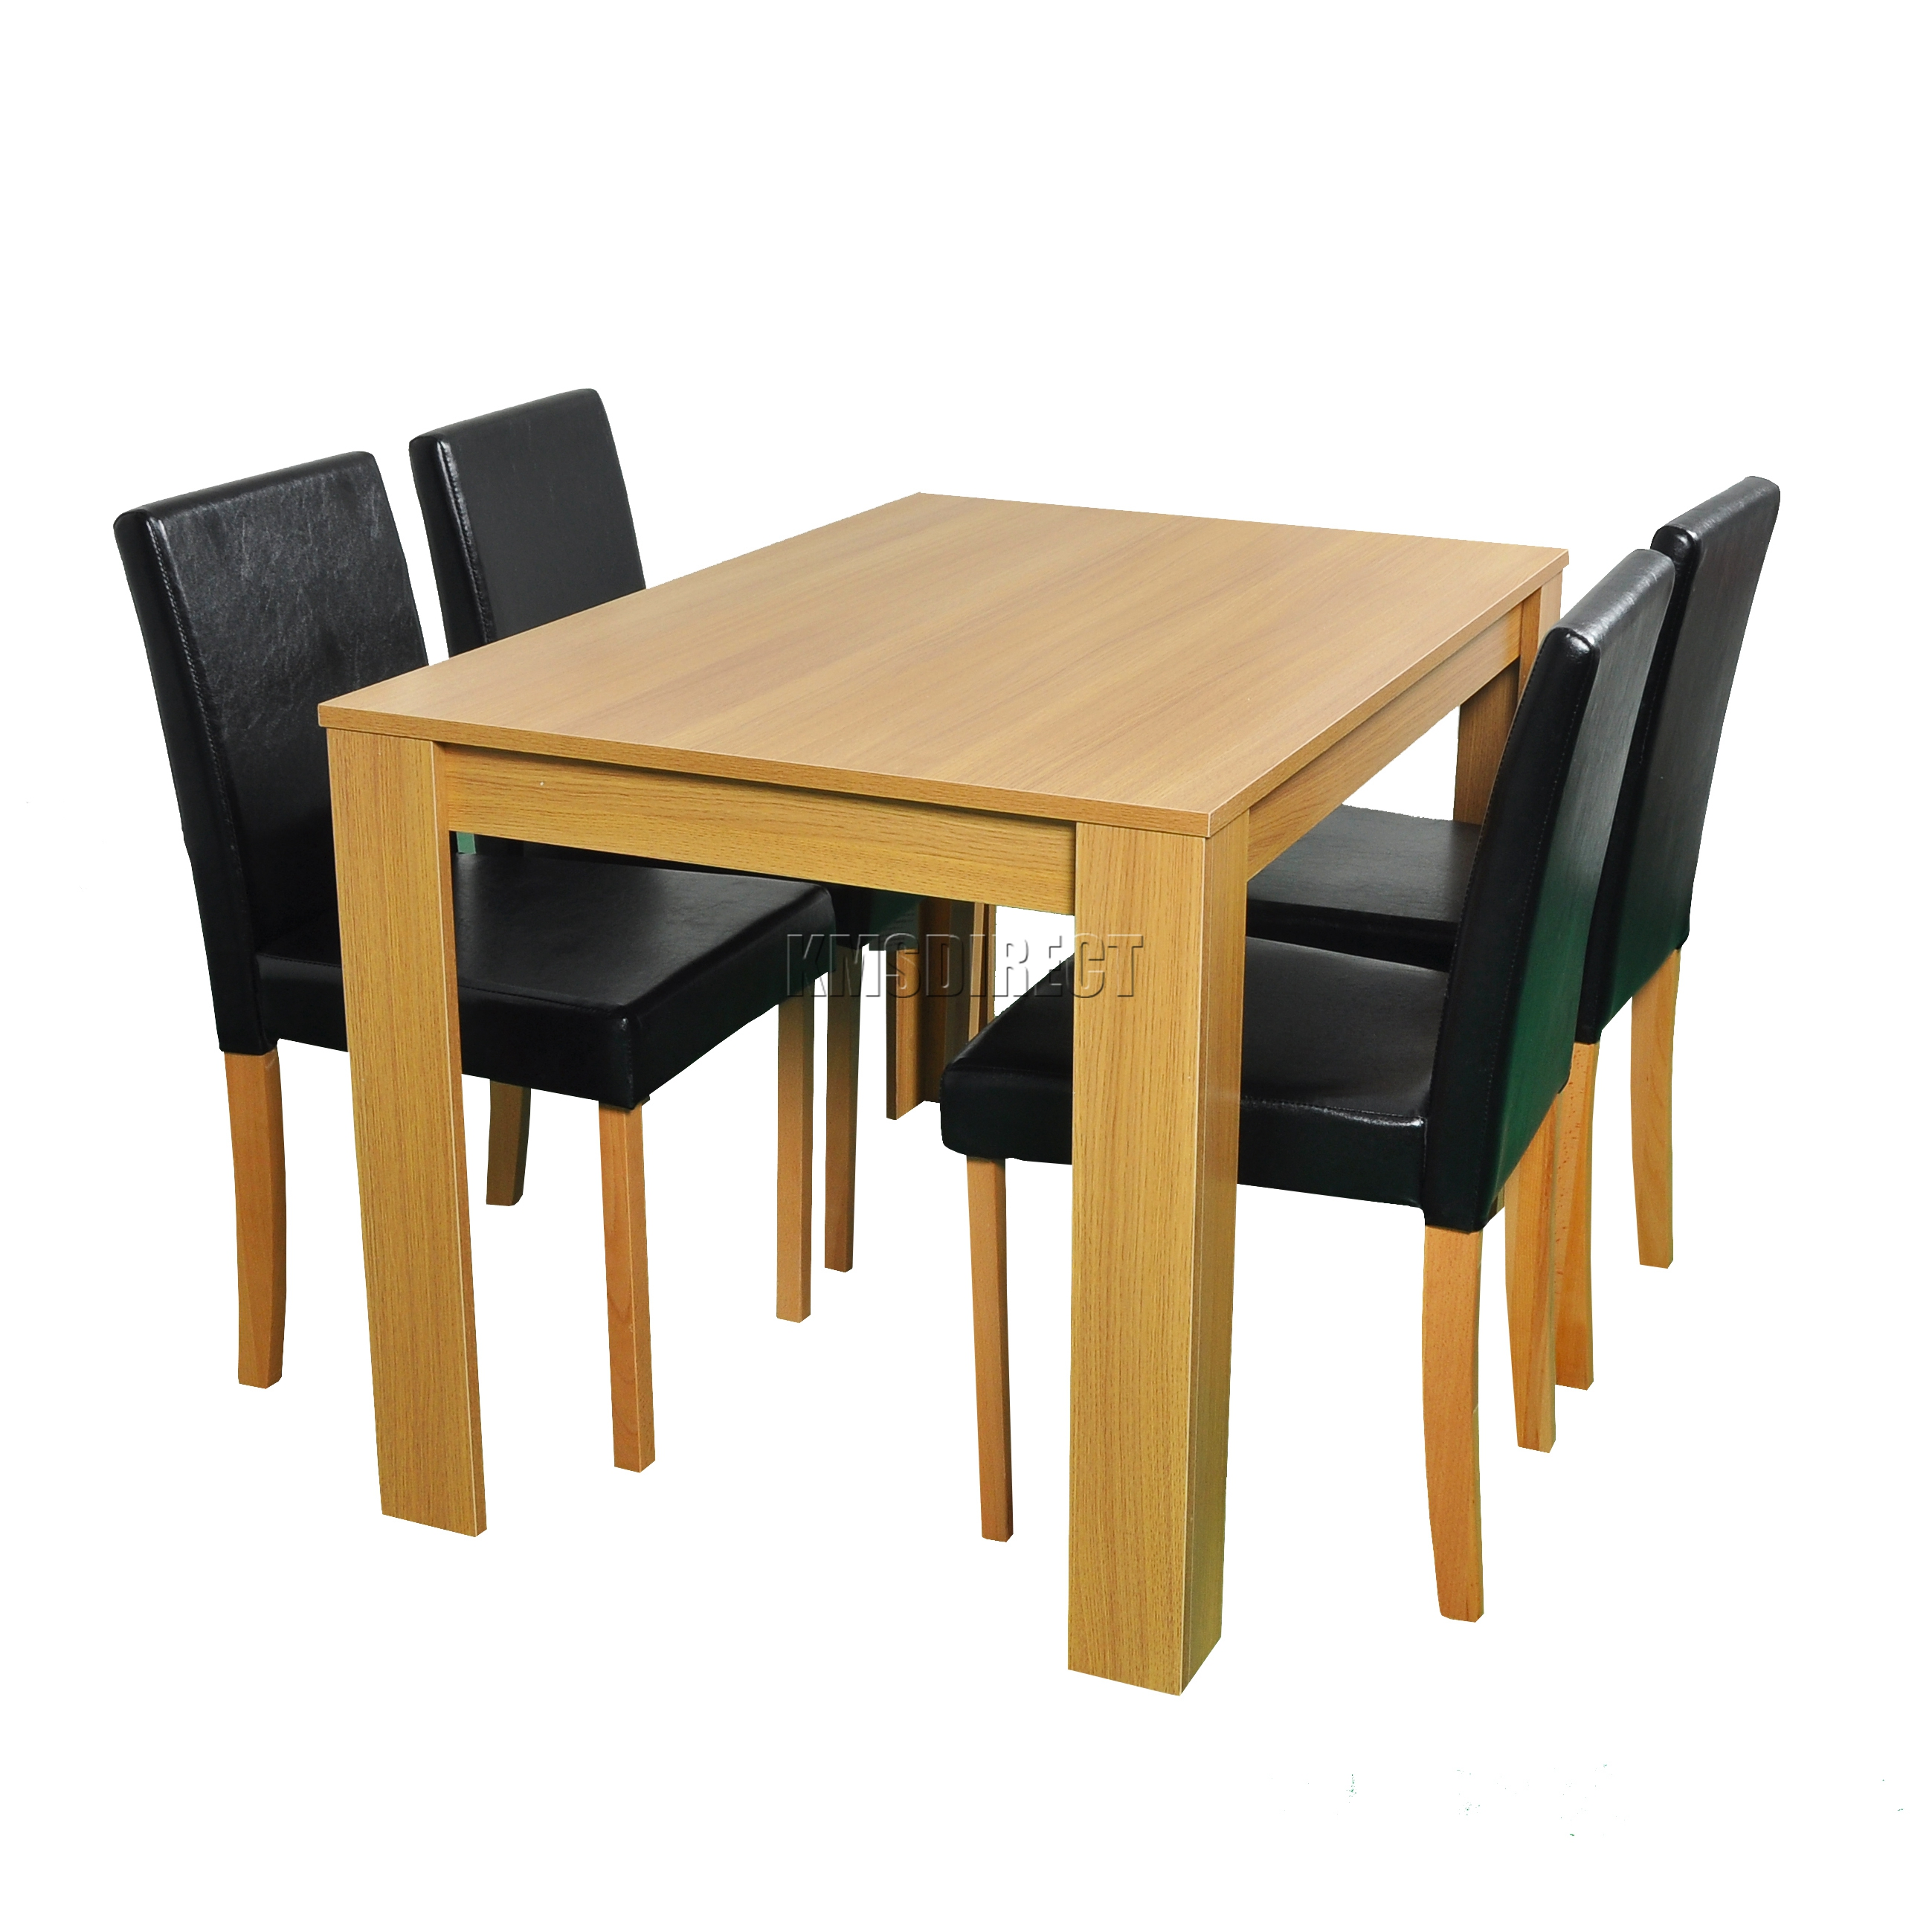 westwood en bois table salle manger et 4 ou 6 simili cuir chaises set meuble ebay. Black Bedroom Furniture Sets. Home Design Ideas